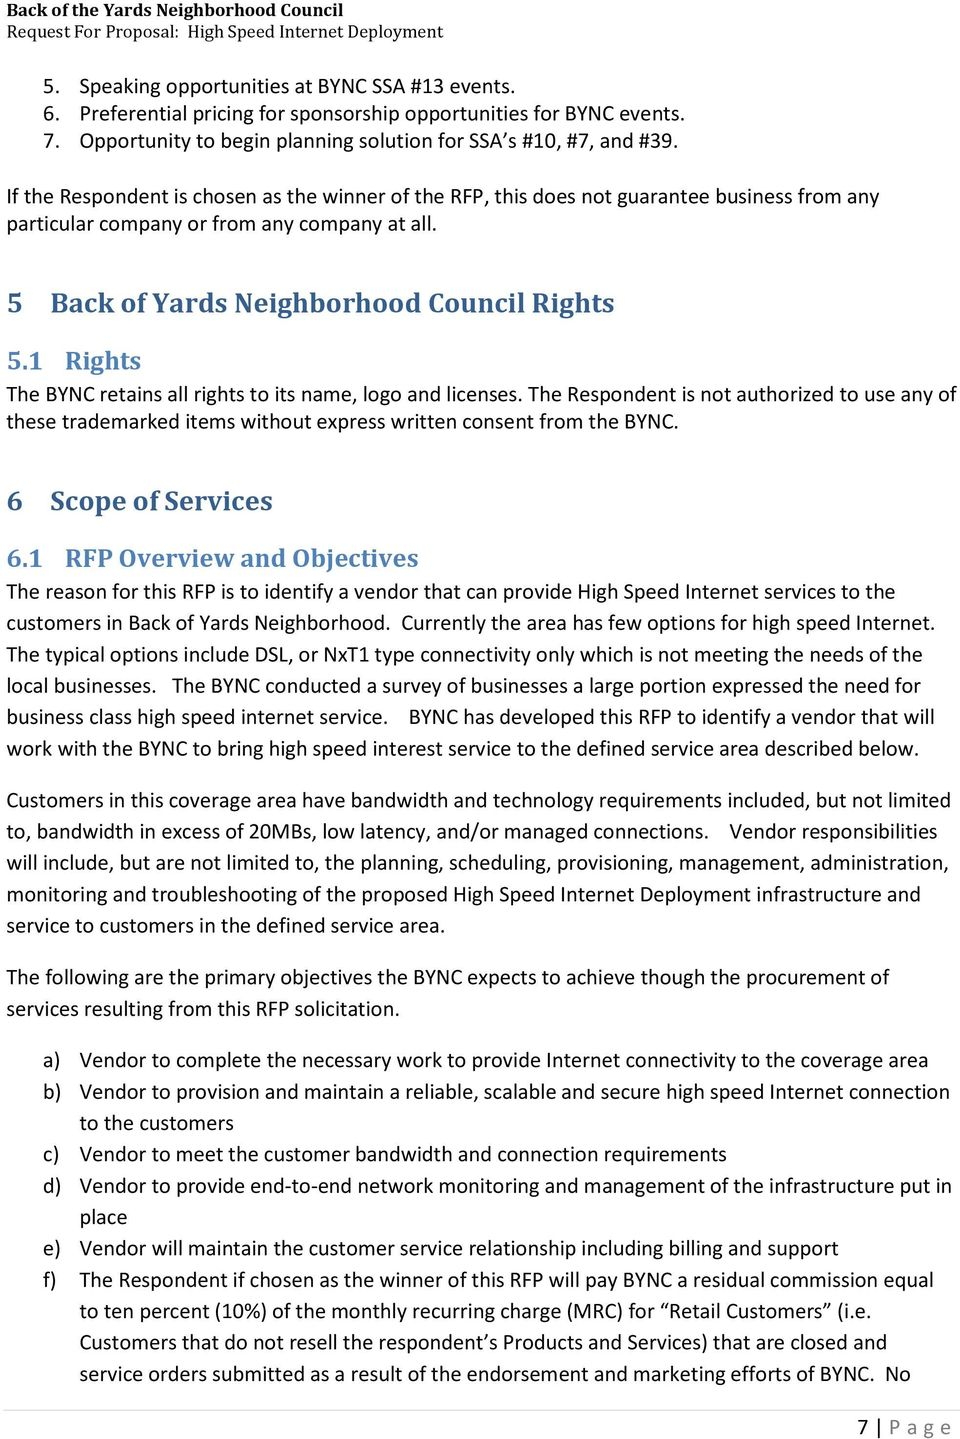 1 Rights The BYNC retains all rights to its name, logo and licenses. The Respondent is not authorized to use any of these trademarked items without express written consent from the BYNC.